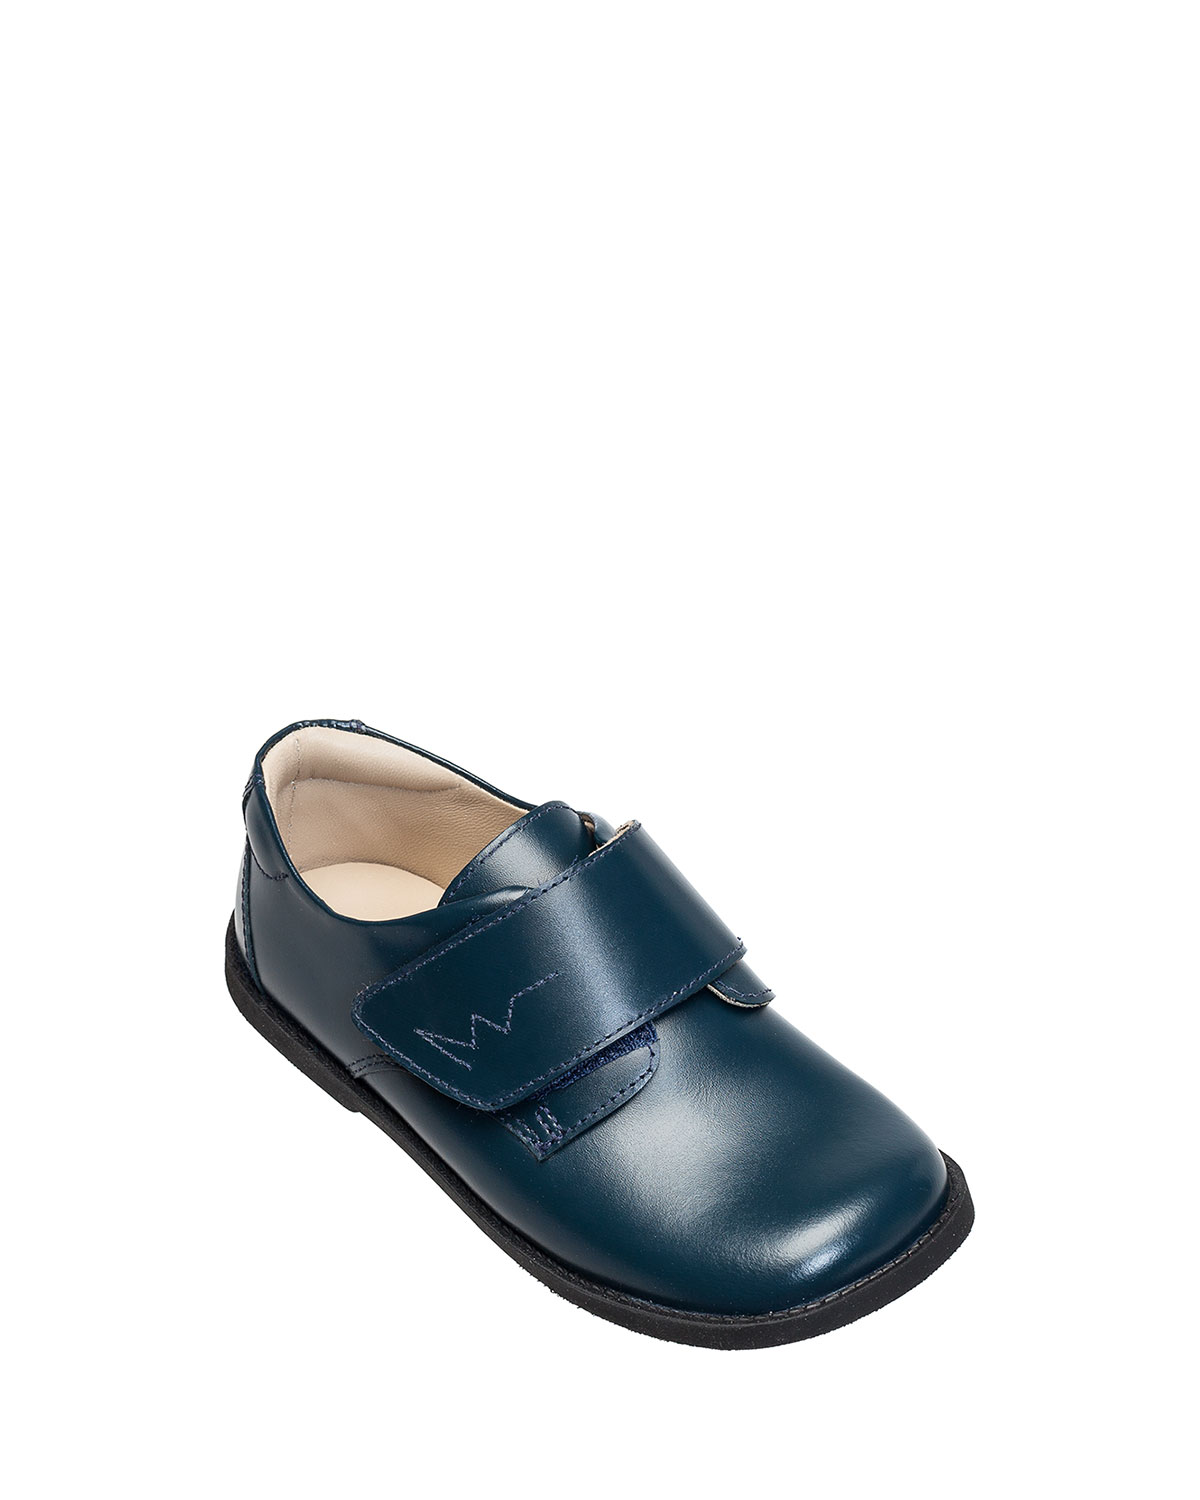 Scholar Boy Leather Loafers